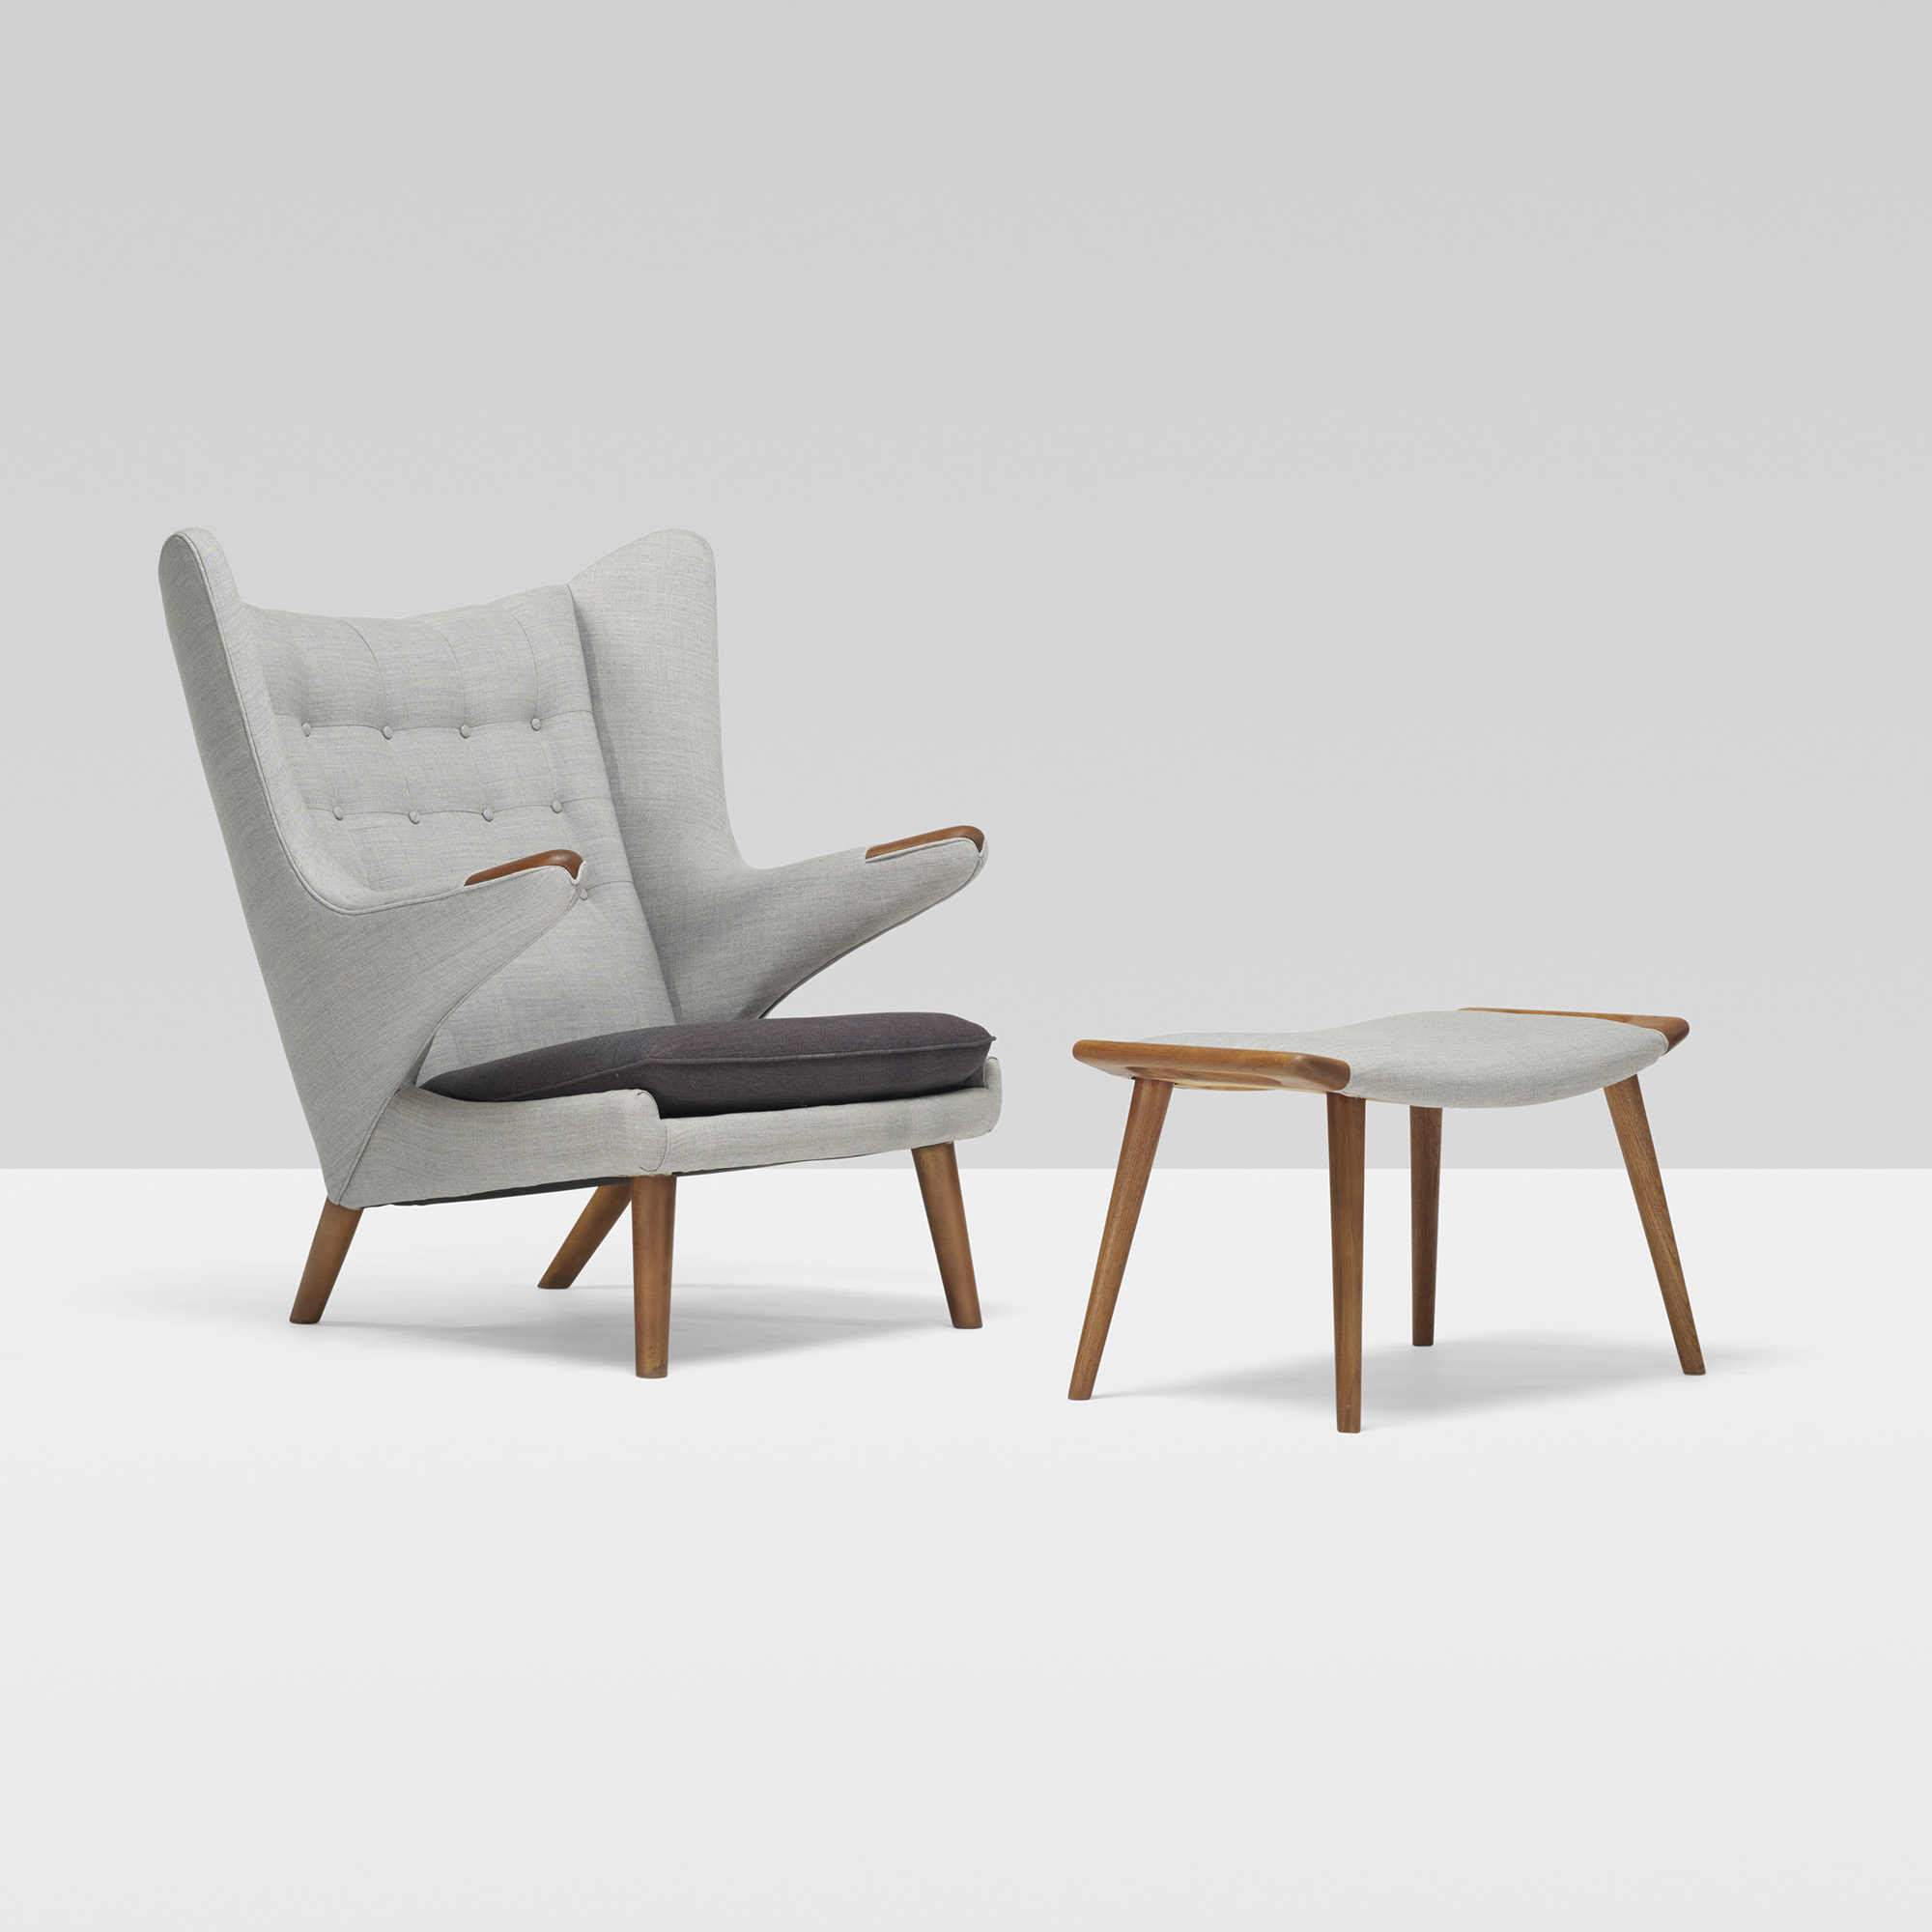 306 Hans J WegnerPapa Bear chair and ottomanDesign 12